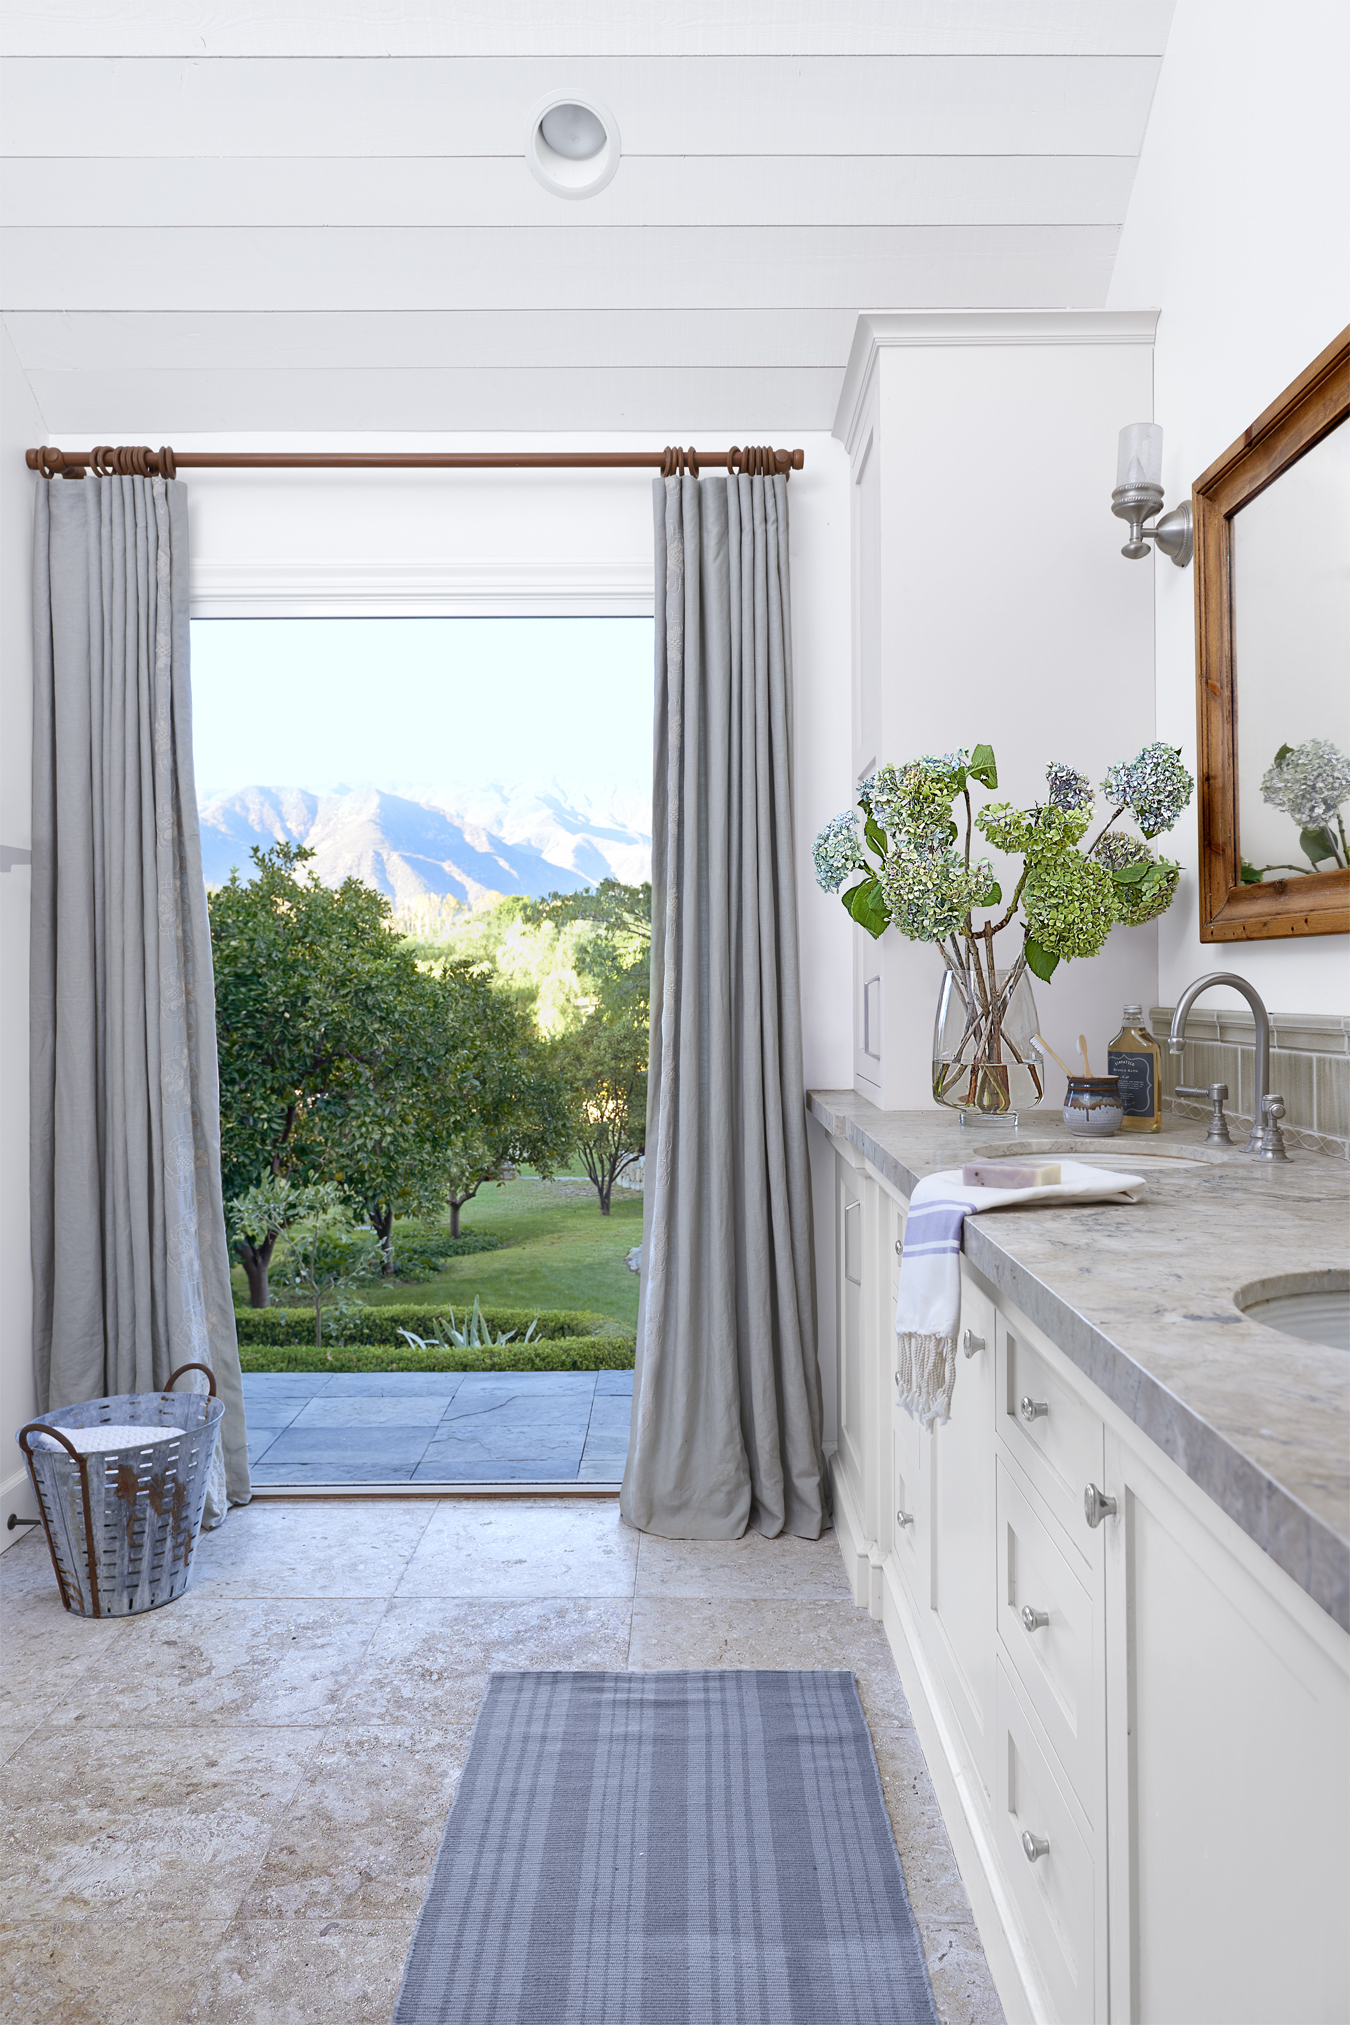 Country master bathroom ideas - 90 Best Bathroom Decorating Ideas Decor Design Inspirations For Bathrooms